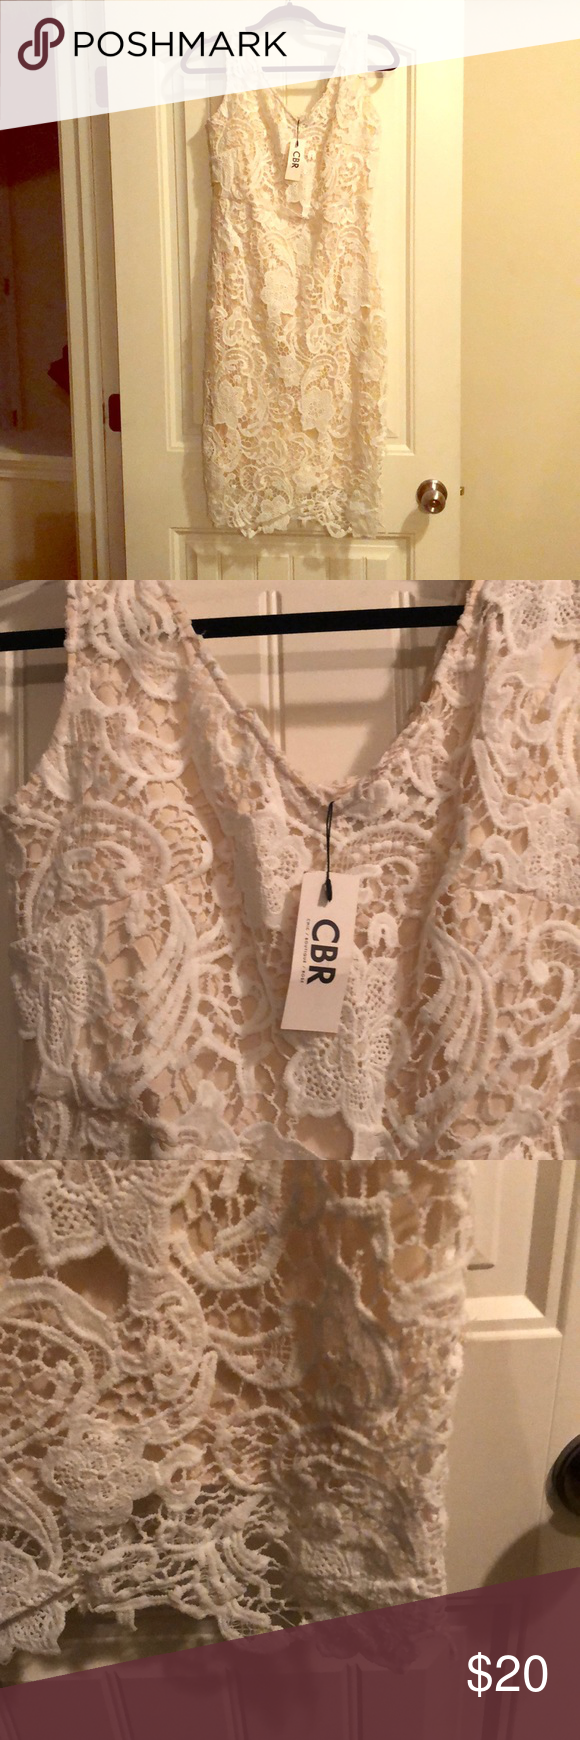 ea8bdb8a92 Off white/winter white mini dress Boutique dress- off white lace with low  stretch to it. I never wore because it was too small for me.